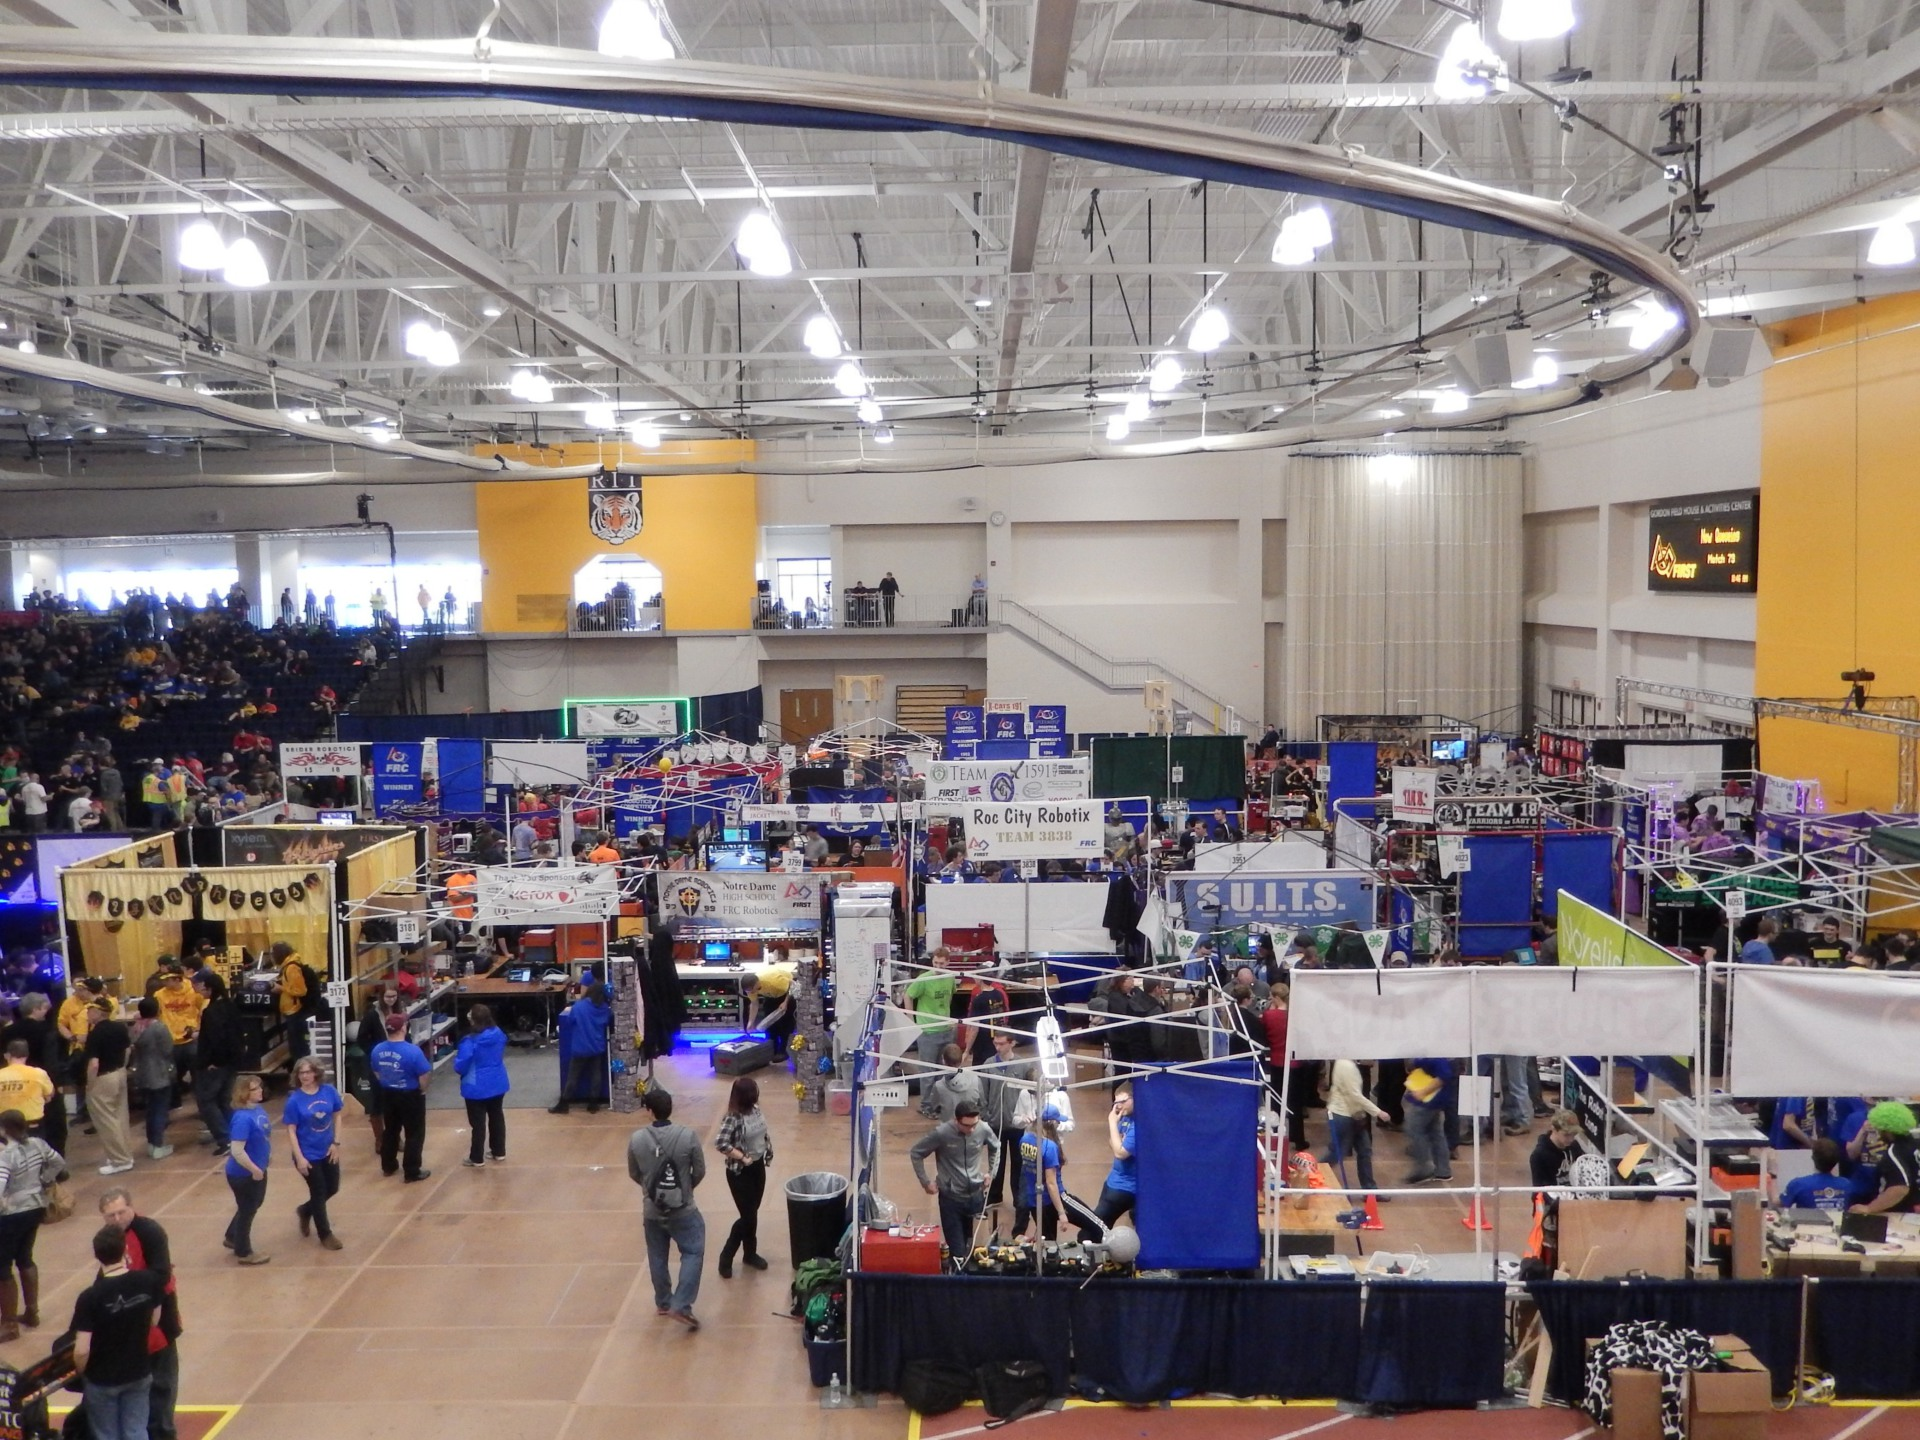 FIRST Robotics Pit Area